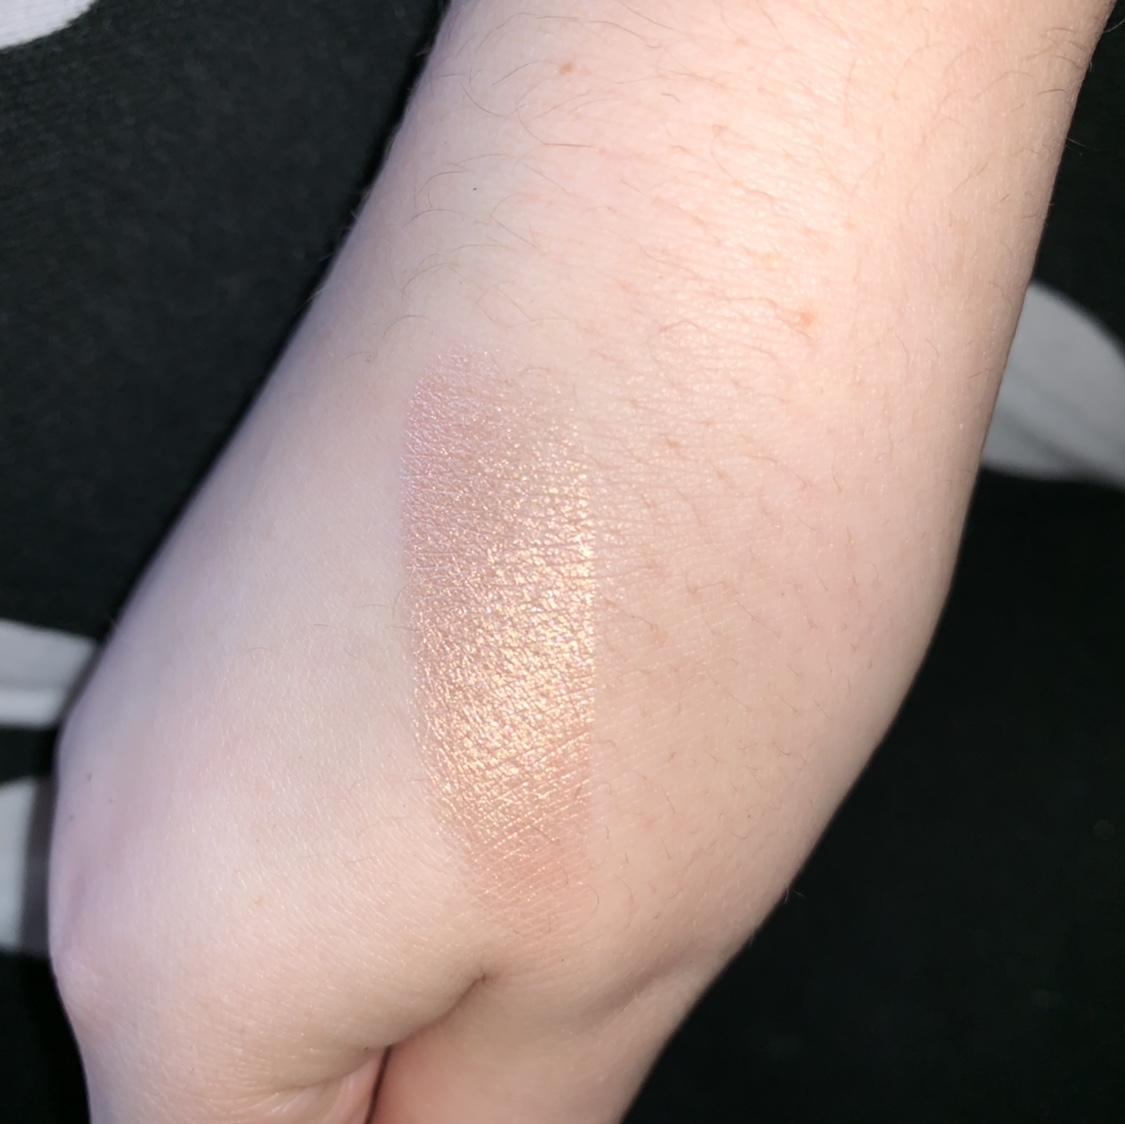 Morphe Highlighter Mini In The Shade Spark Only Depop As always i hope this video is helpful ❤︎ available here↓. morphe highlighter mini in the shade